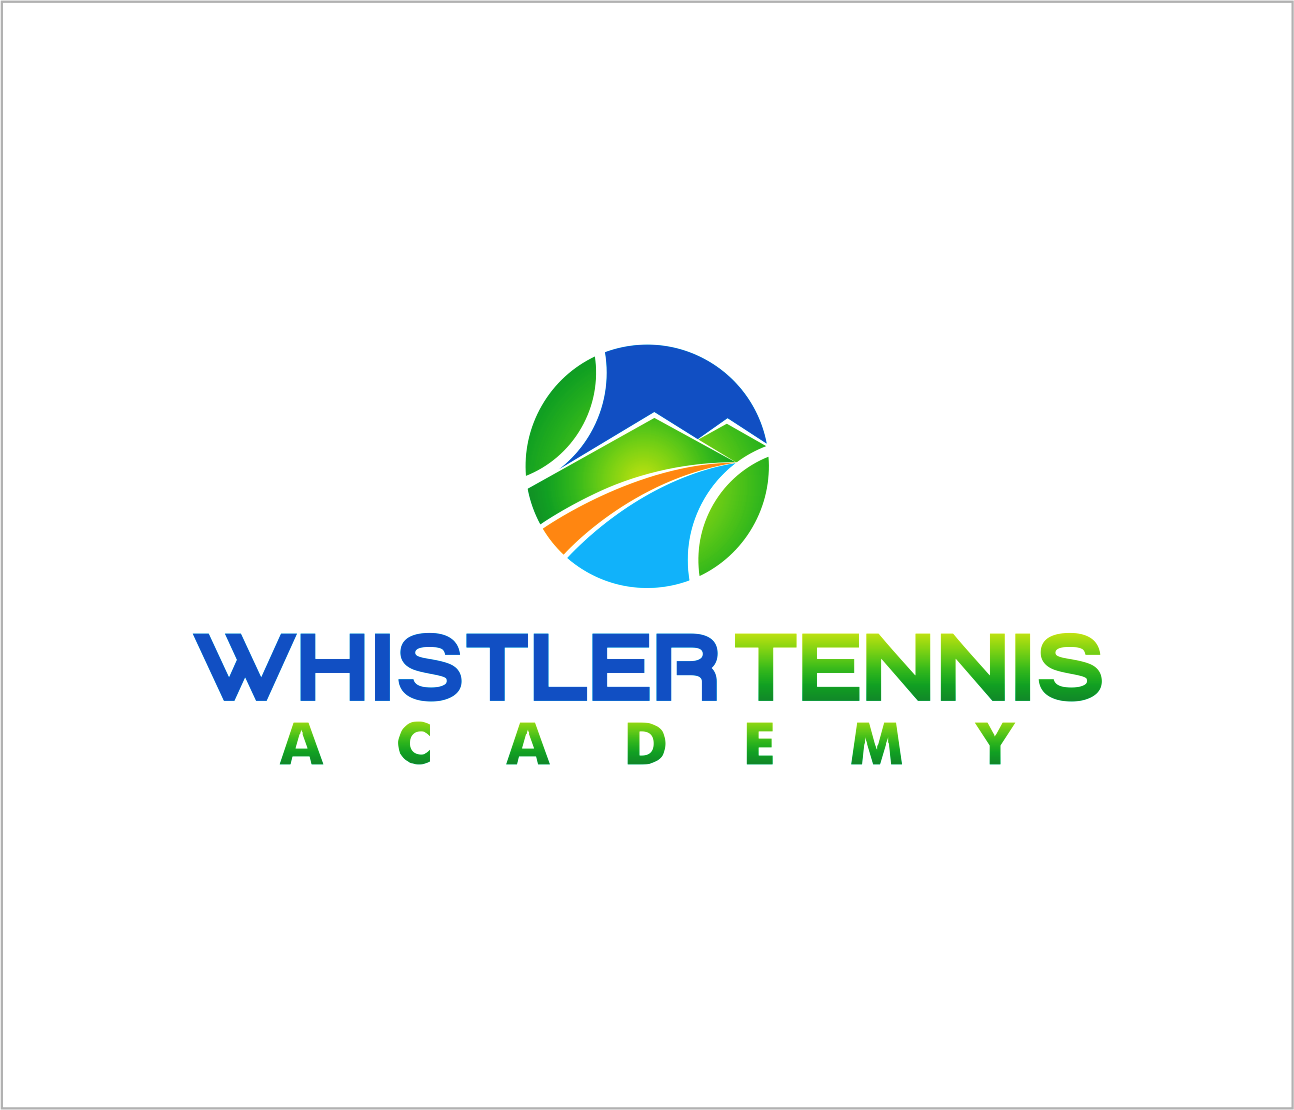 Logo Design by Armada Jamaluddin - Entry No. 244 in the Logo Design Contest Imaginative Logo Design for Whistler Tennis Academy.